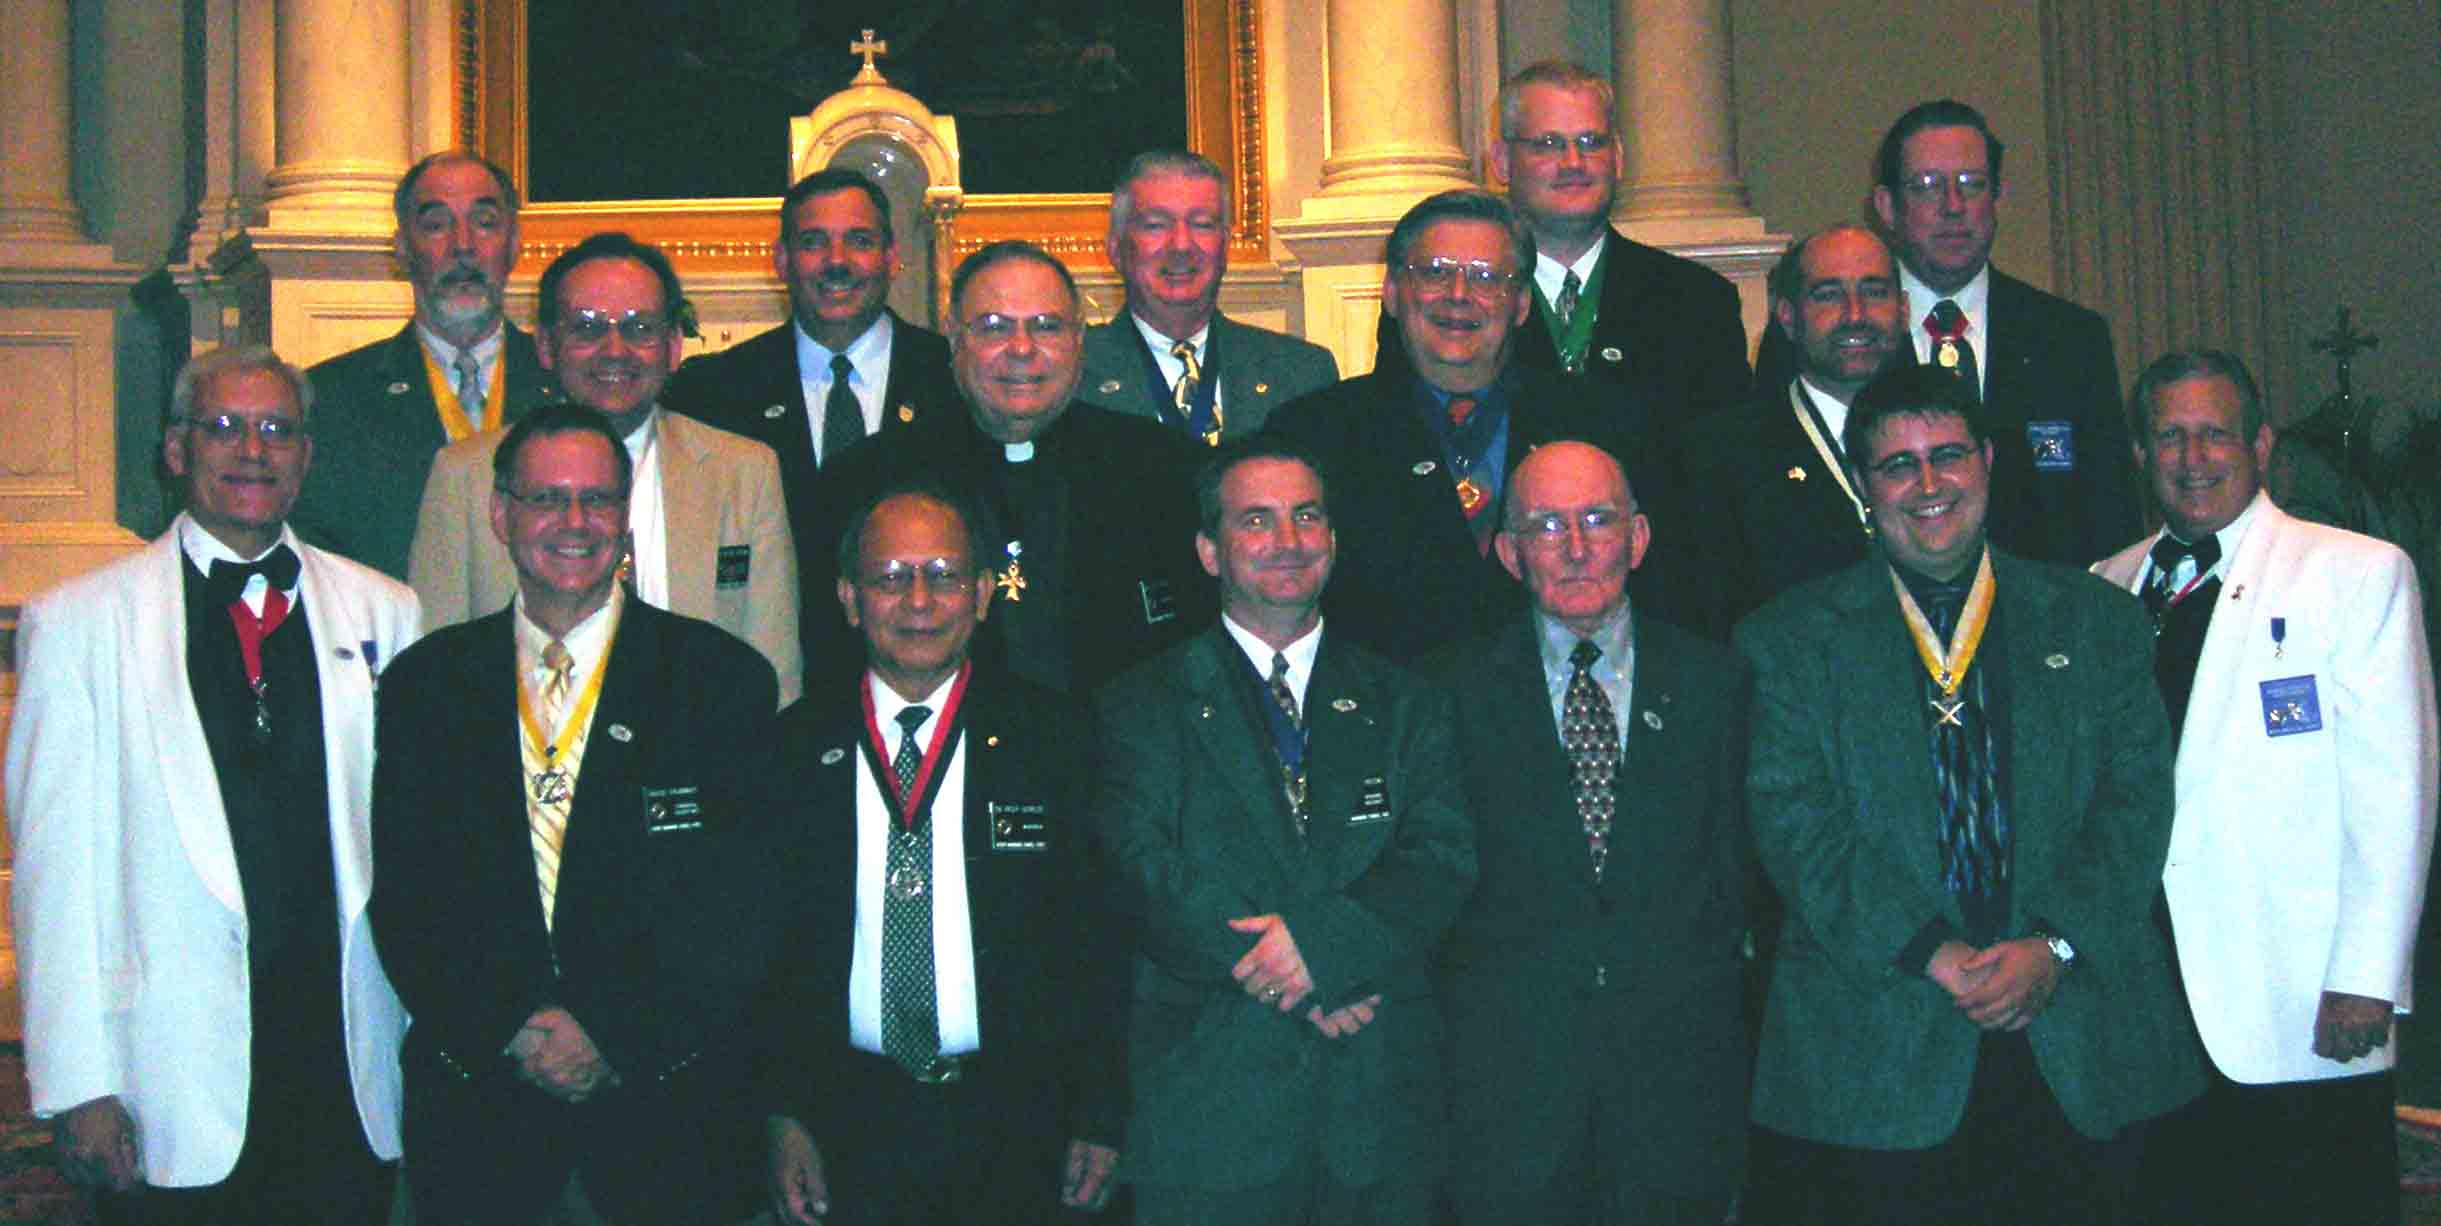 KofC Cncl 1622 Officers 2006-2007 Fraternal Year – Double click for close up